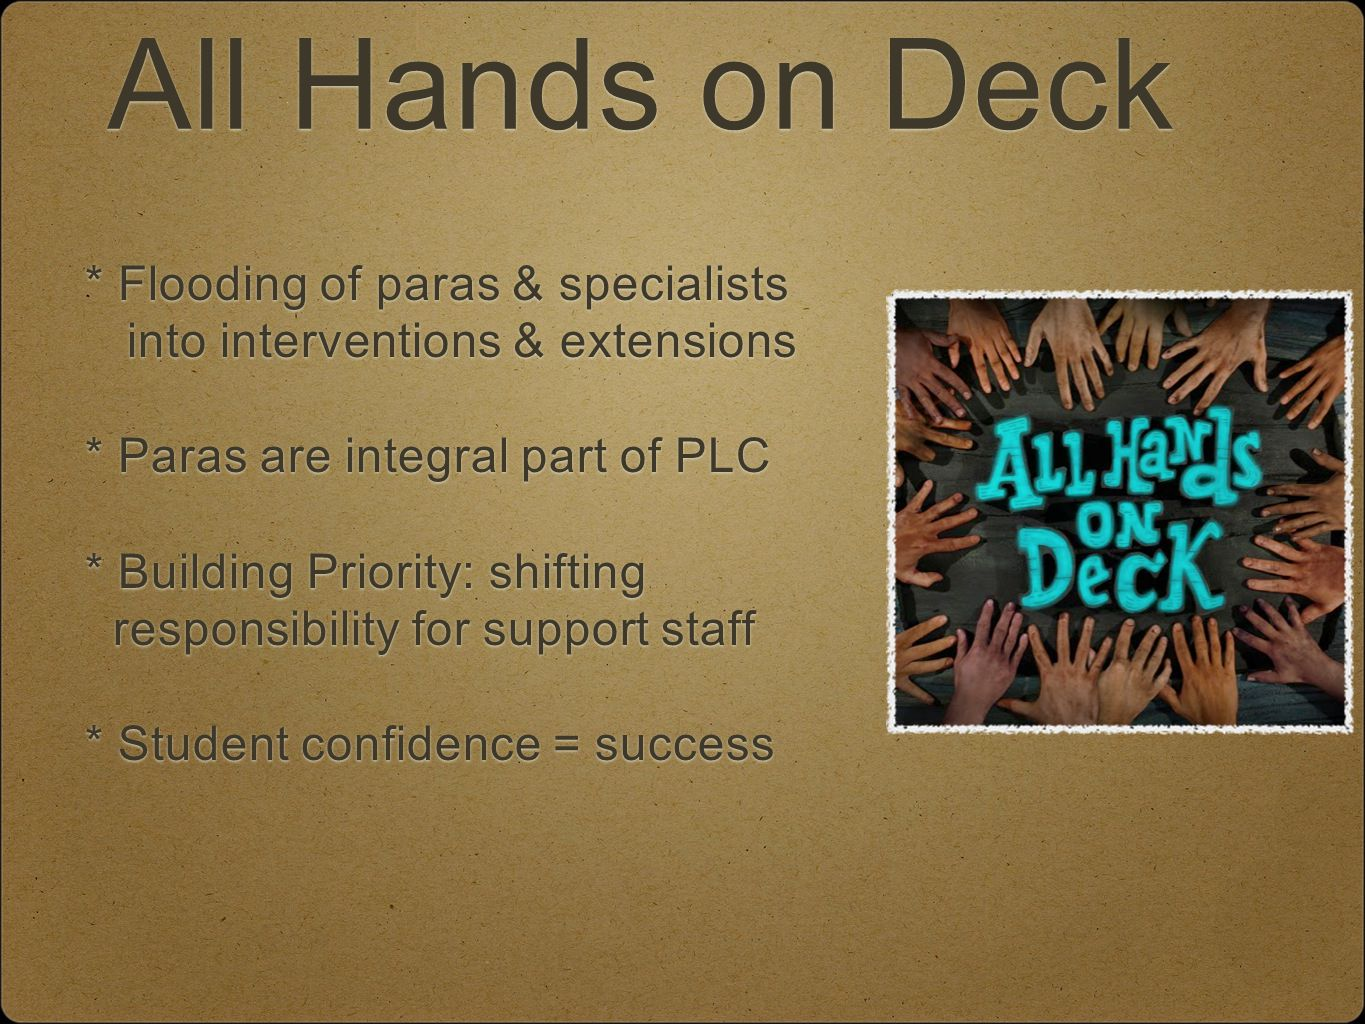 All Hands on Deck * Flooding of paras & specialists into interventions & extensions * Paras are integral part of PLC * Building Priority: shifting responsibility for support staff * Student confidence = success * Flooding of paras & specialists into interventions & extensions * Paras are integral part of PLC * Building Priority: shifting responsibility for support staff * Student confidence = success